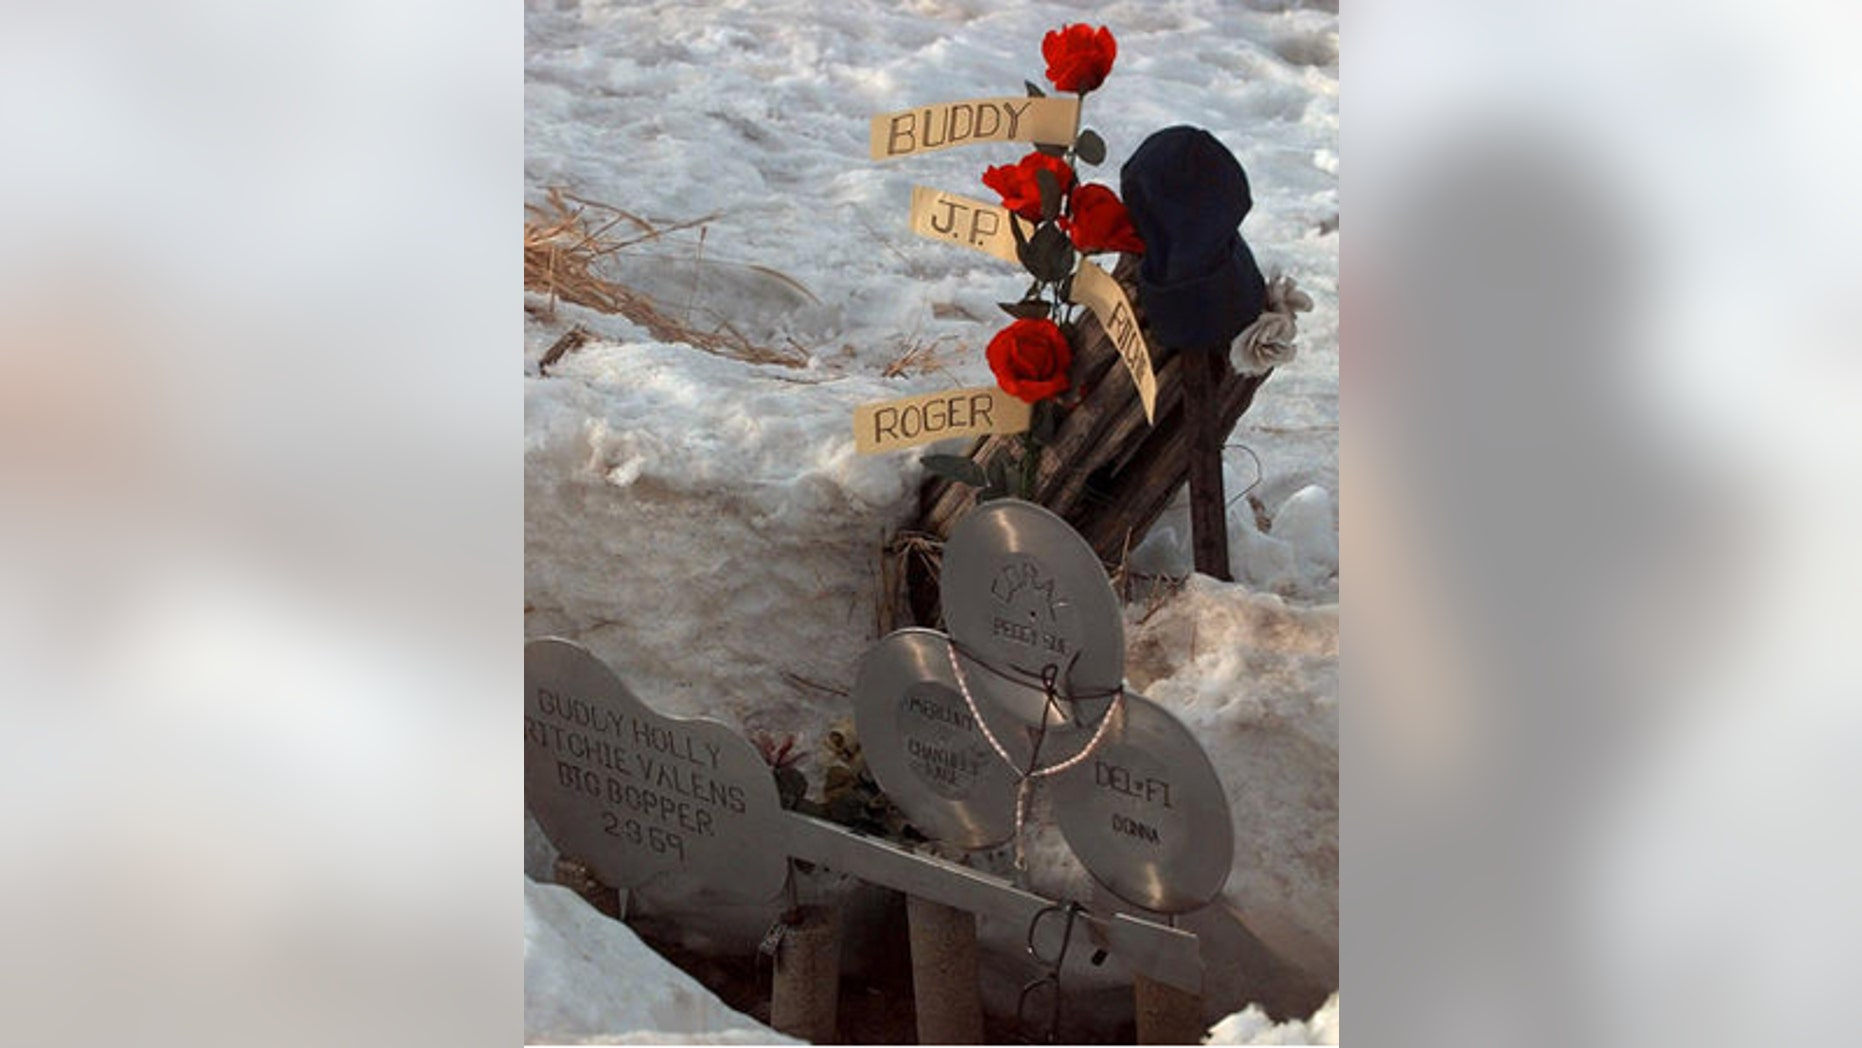 """Feb. 6, 1999: A memorial is set up where Buddy Holly, Ritchie Valens, and J.P. """"The Big Bopper"""" Richardson, died in a plane crash in Clear Lake, Iowa."""